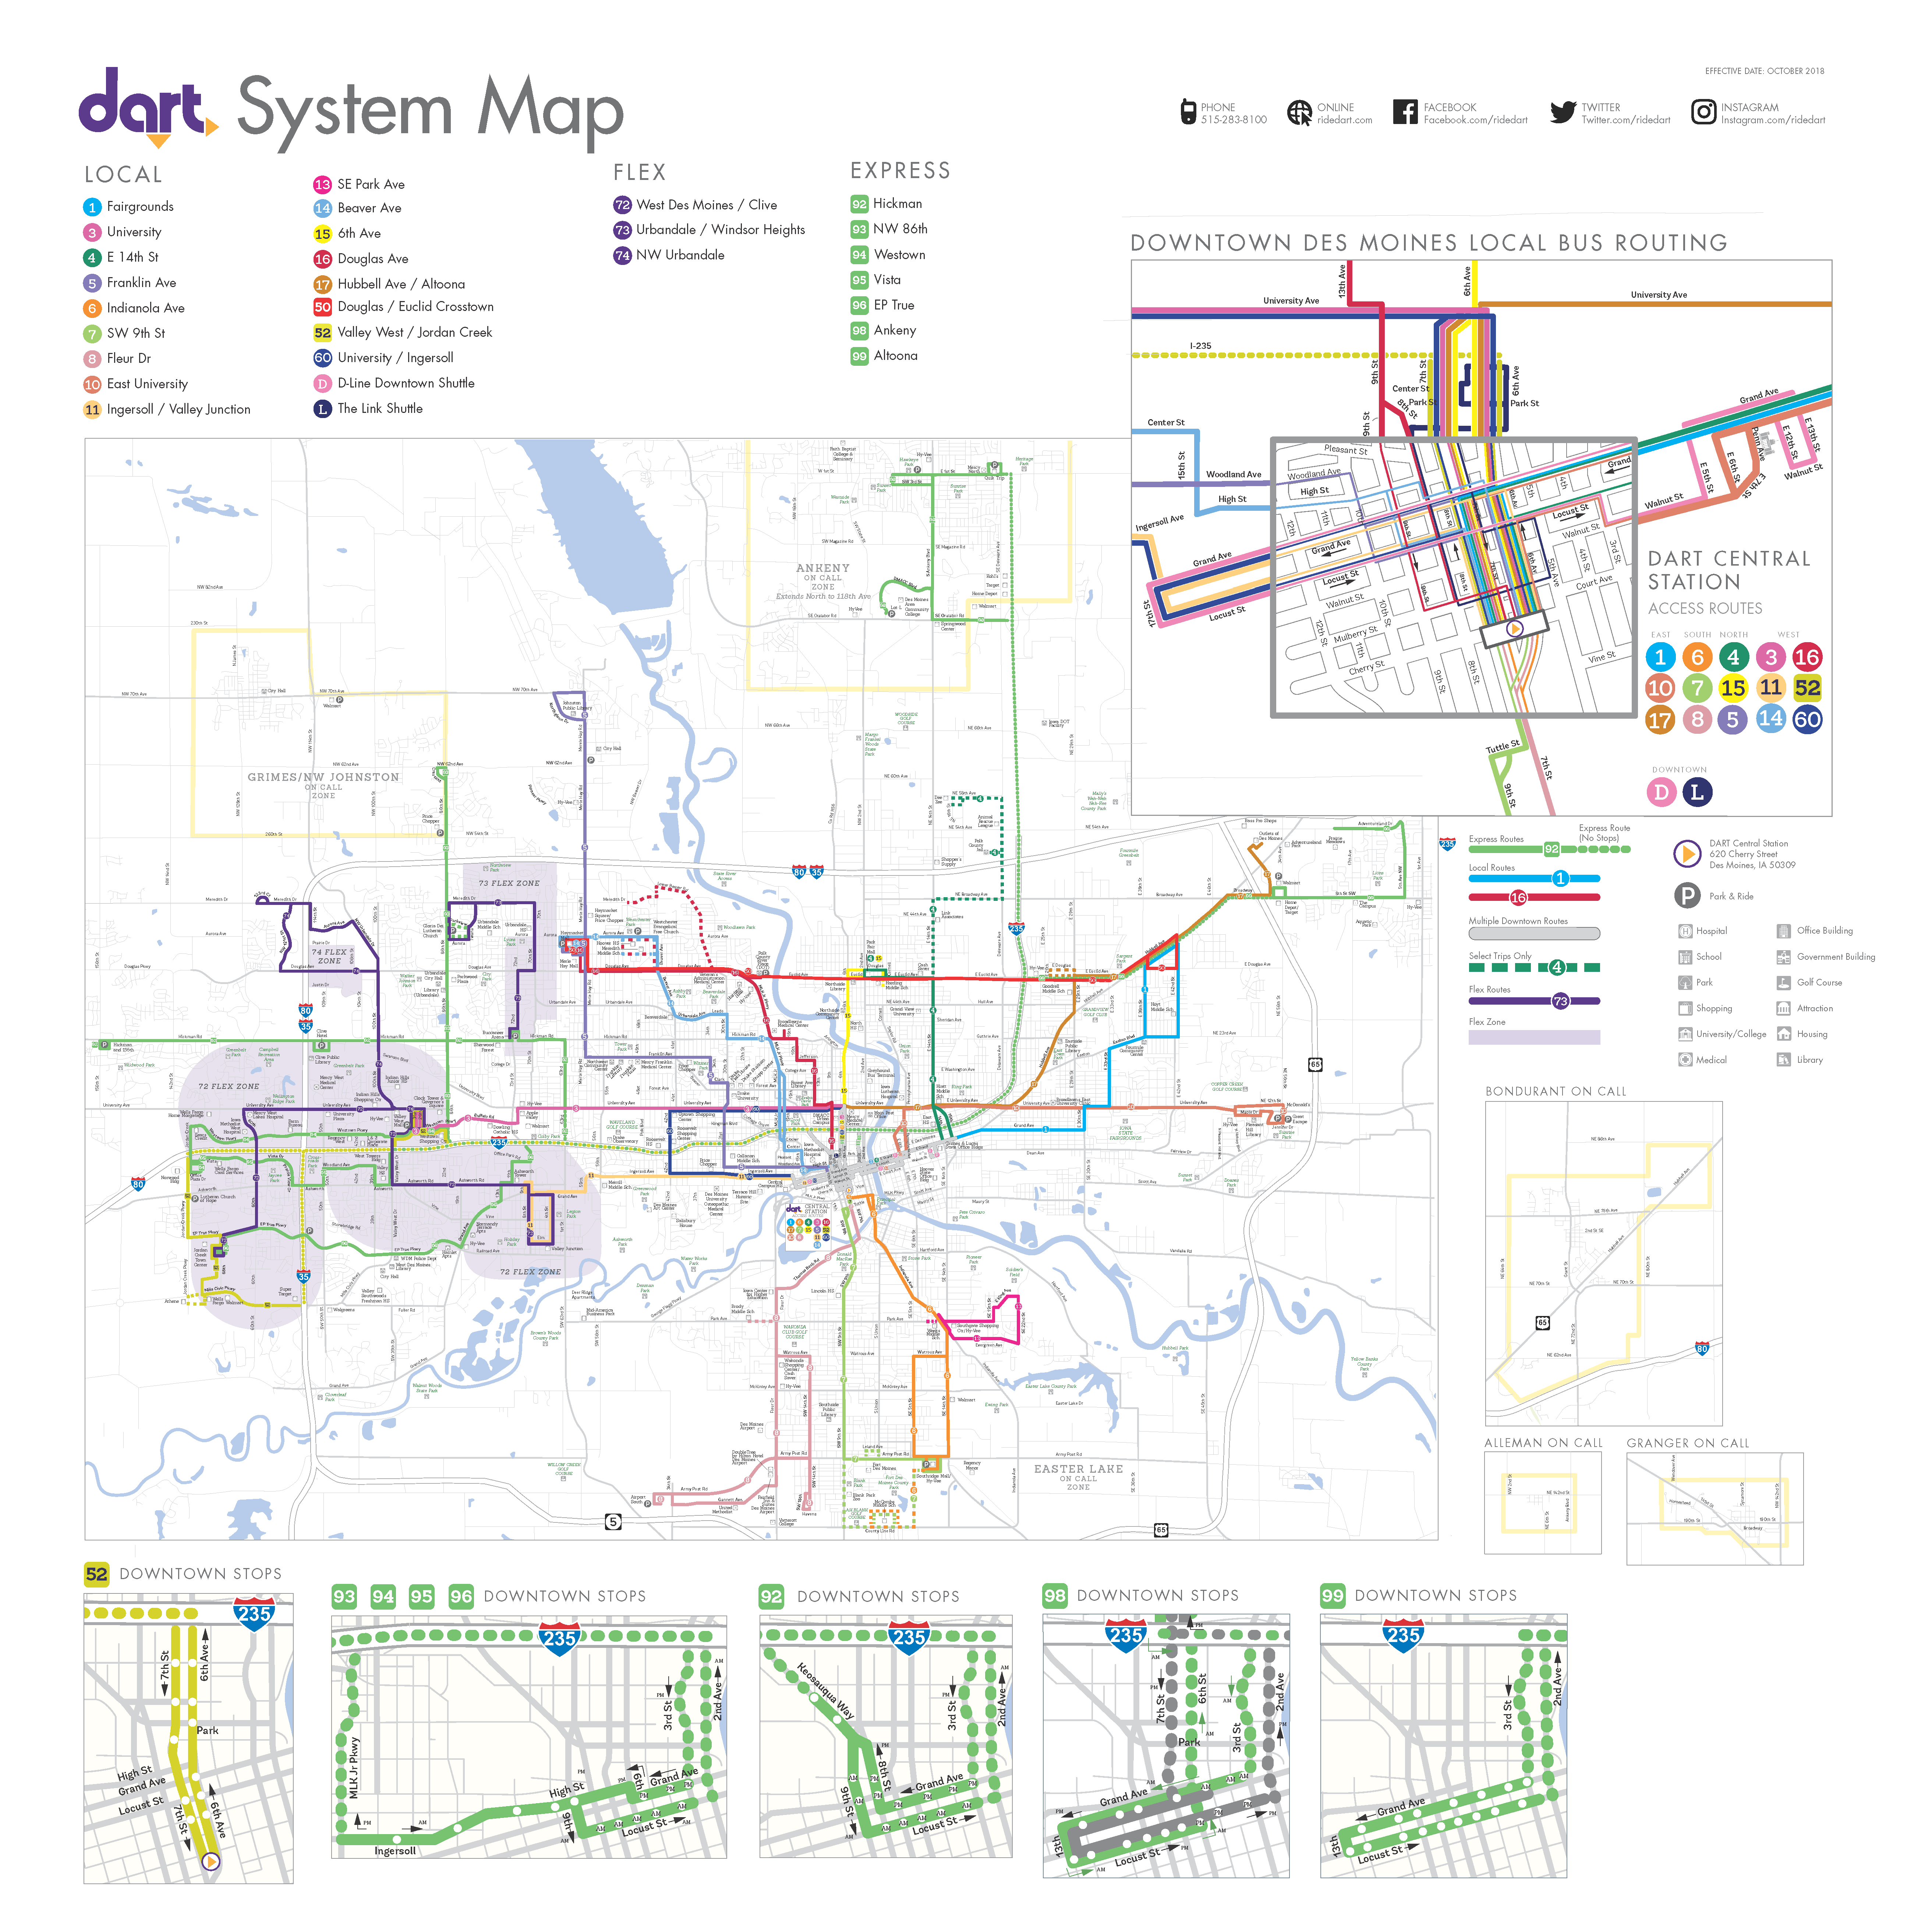 DART Bus Lines System Overview - Des Moines Area Regional ...  Bus Route Map on m35 bus map, bus field trip, bus seat map, qm5 bus map, bus models, bus template, bus routes colorado springs co, bus routes oahu hawaii, bus schedule, bus san francisco 1960, bus routes logo, b13 bus map, bus routes in plymouth england, bus stop location map, bus routes los angeles, bus routes in central london, b47 bus map, bus routes in maui hawaii, bus travel to georgia,